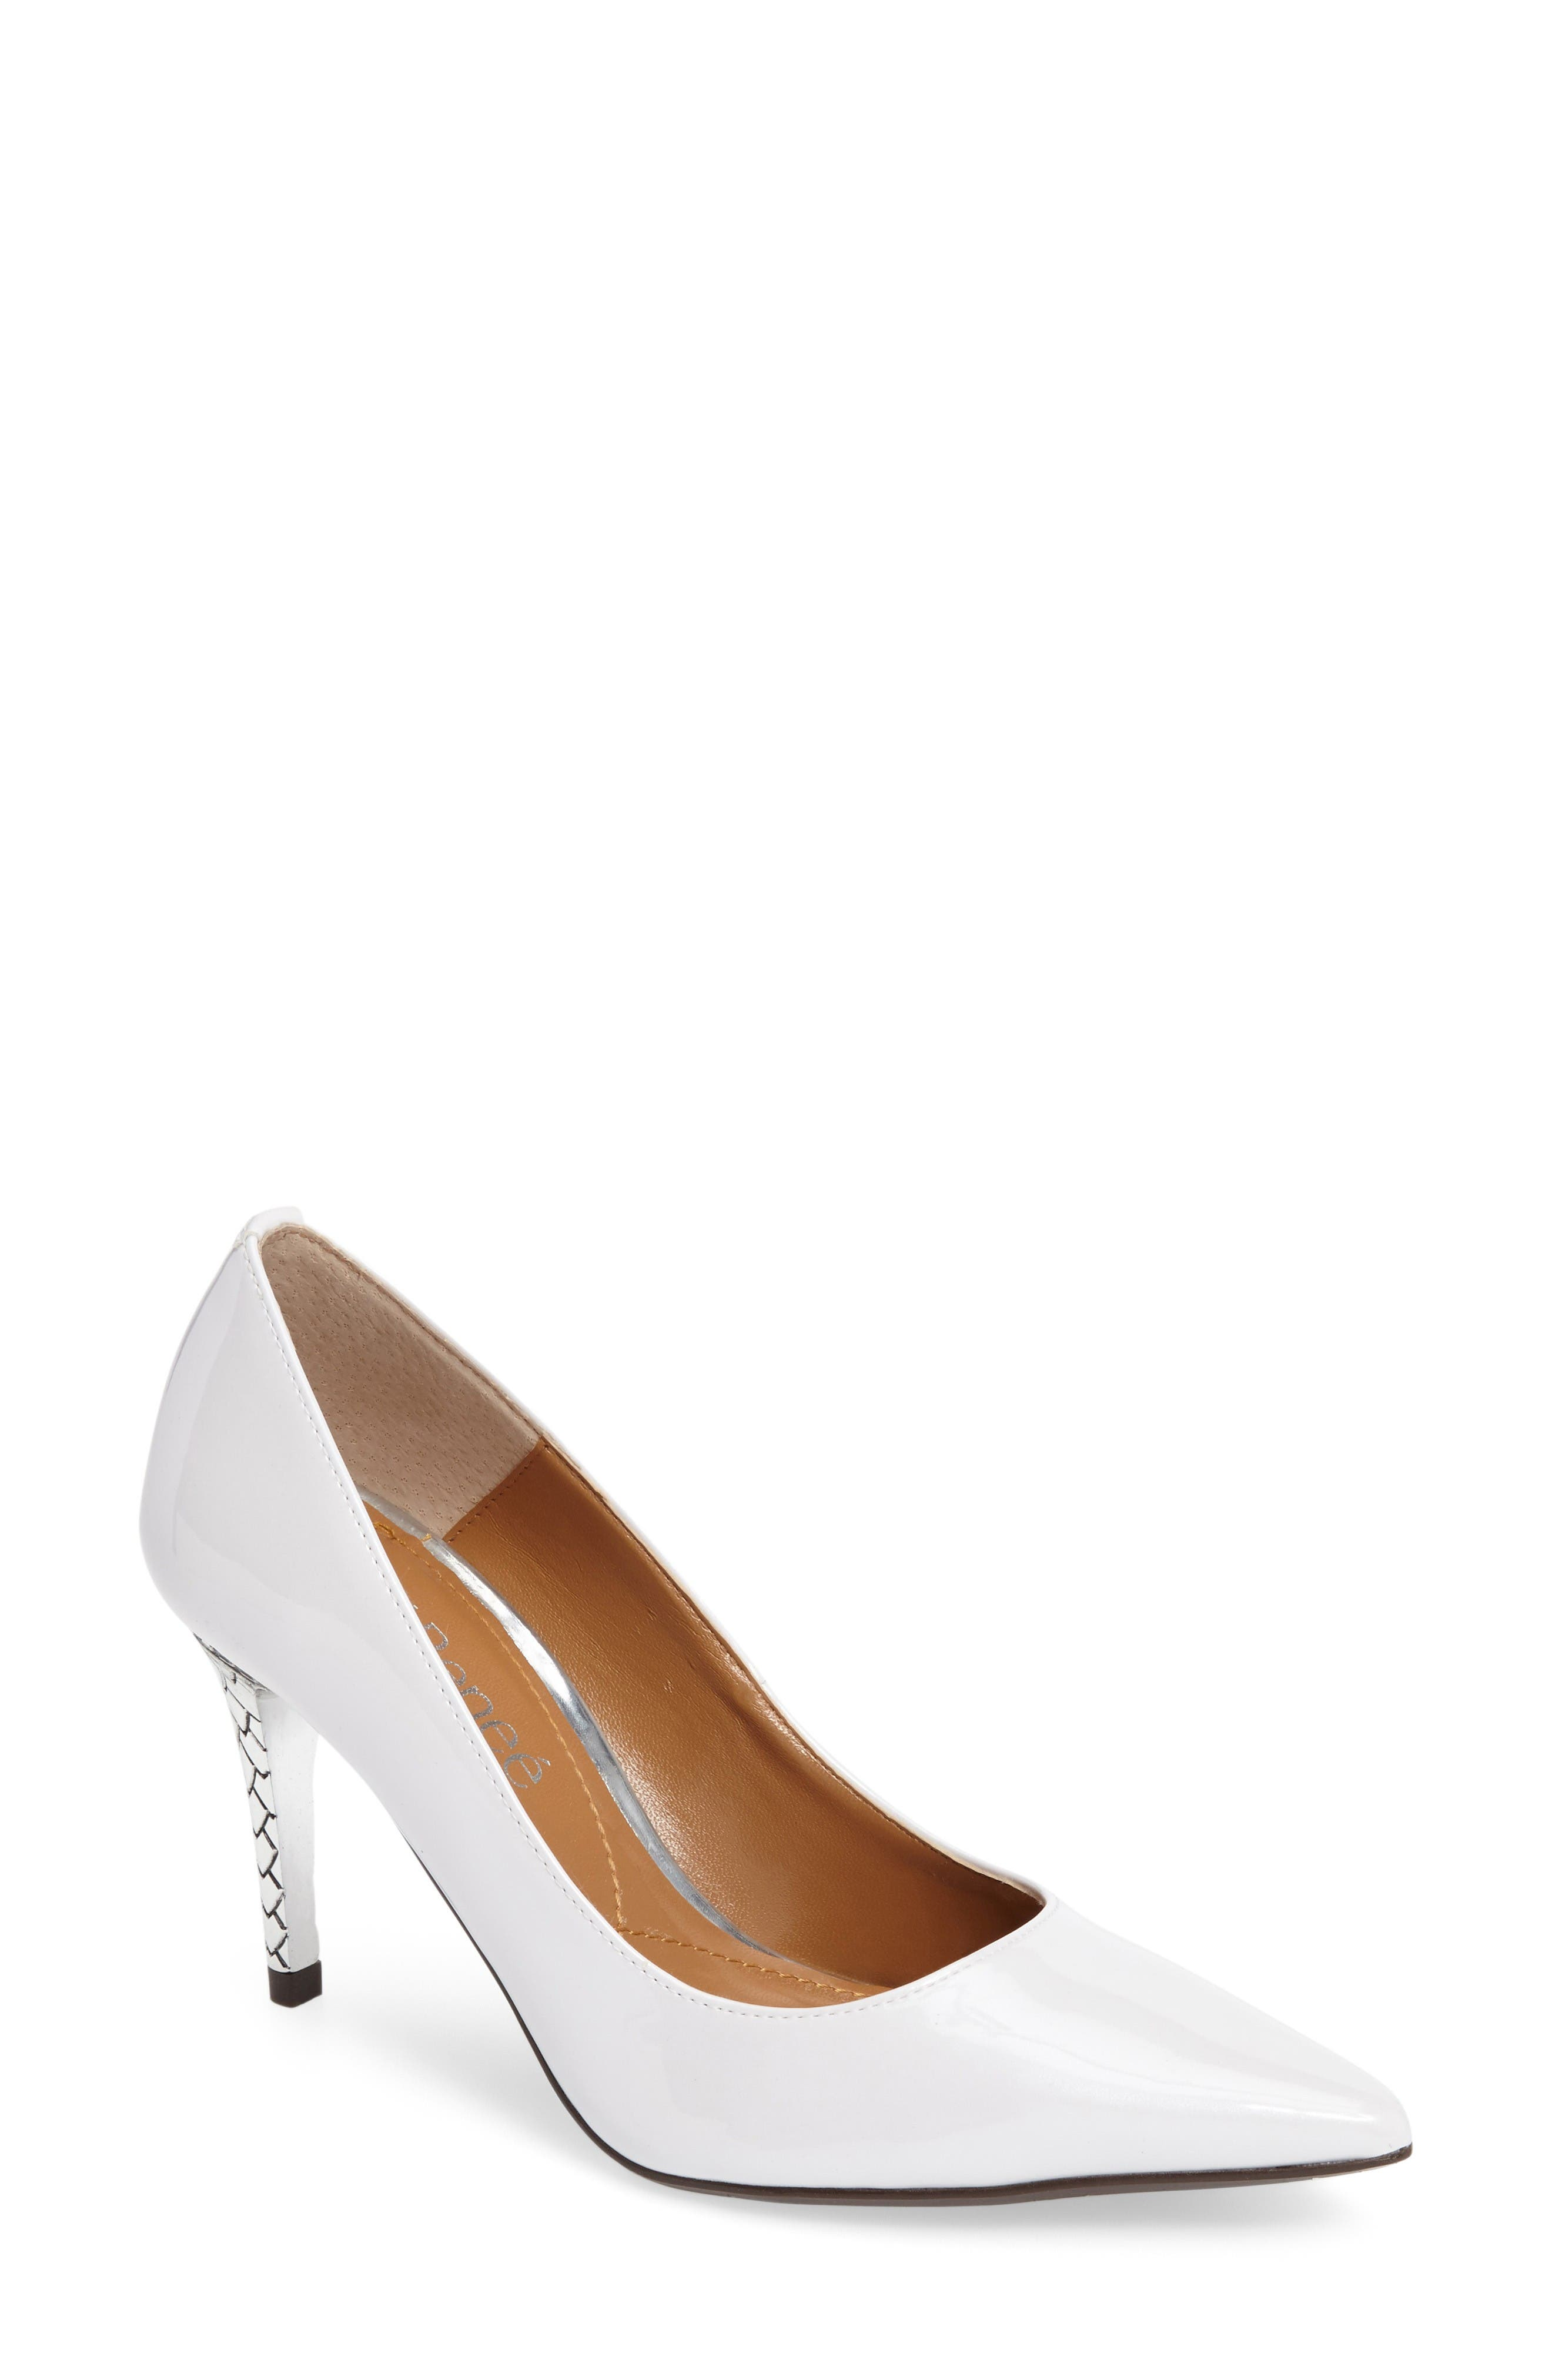 J. RENEÉ 'Maressa' Pointy Toe Pump